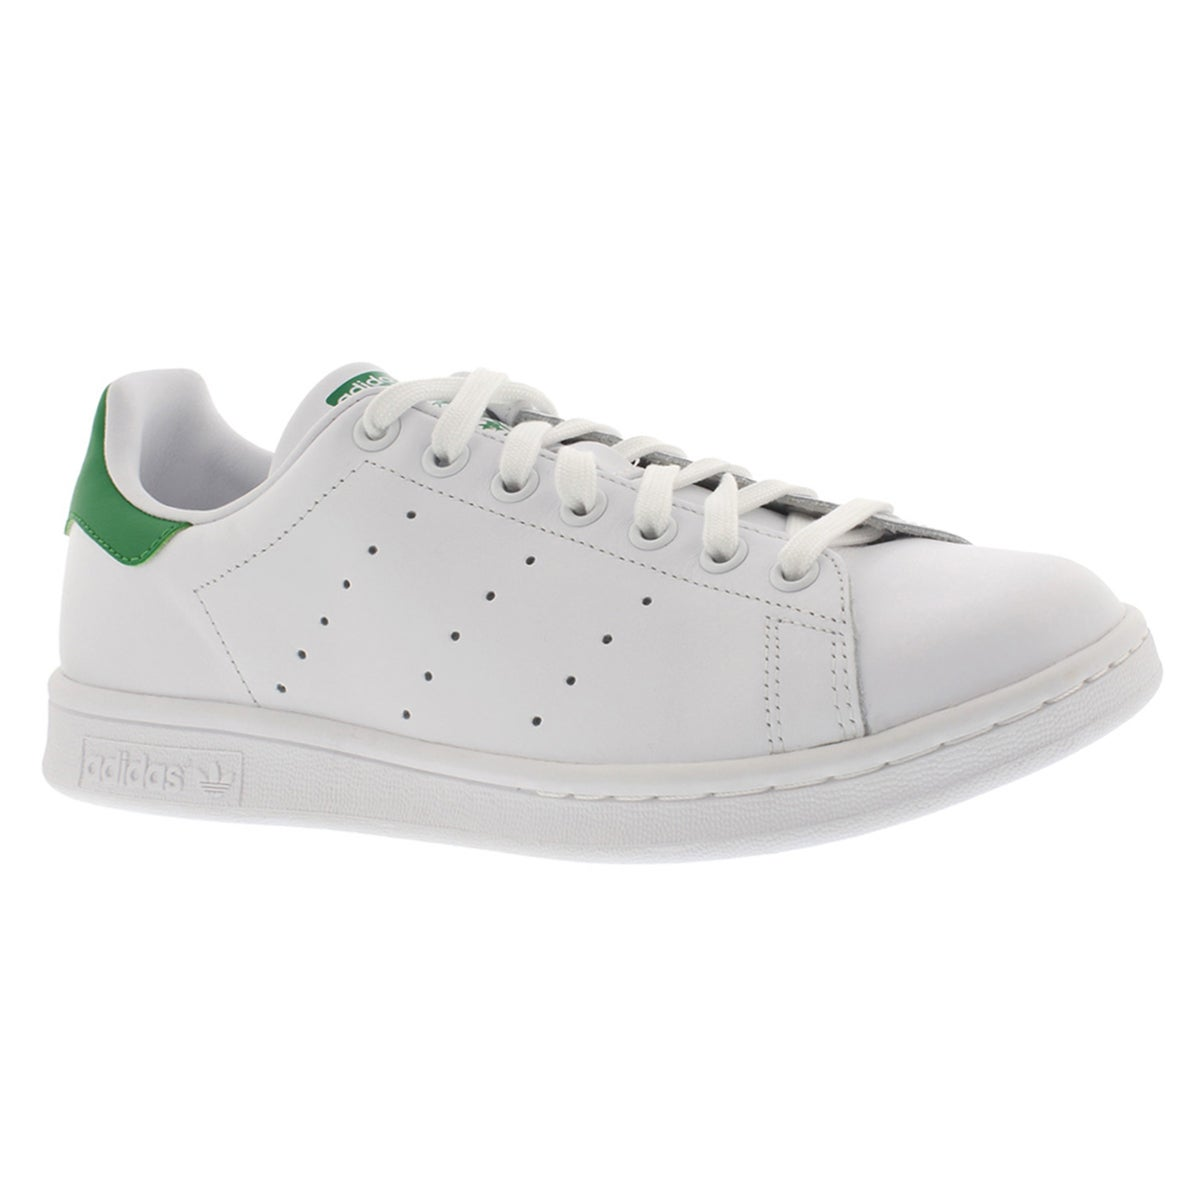 Men's STAN SMITH white/green sneakers